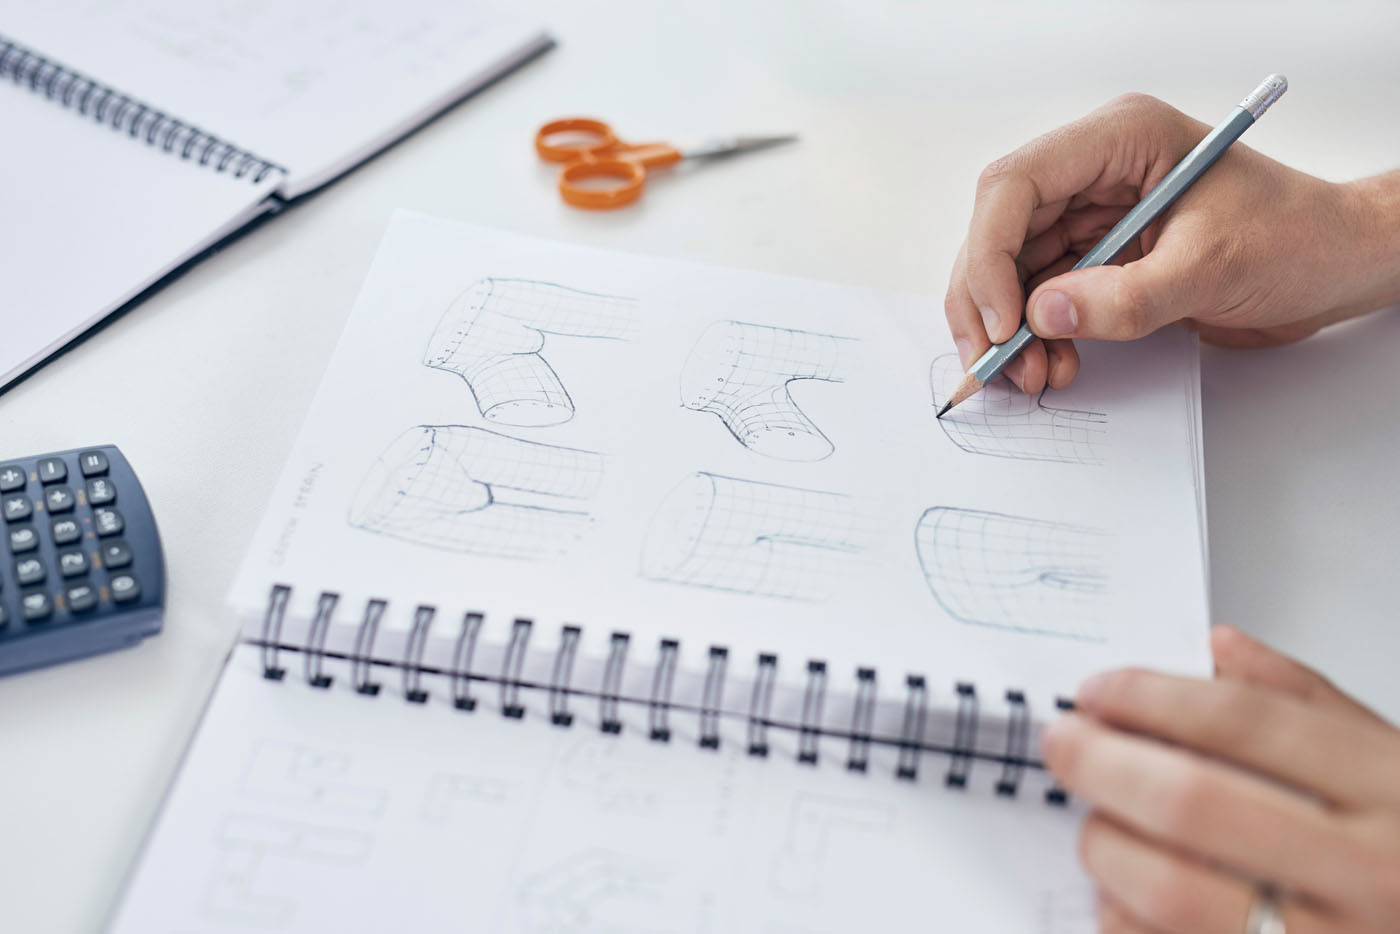 Designer working on product design sketches